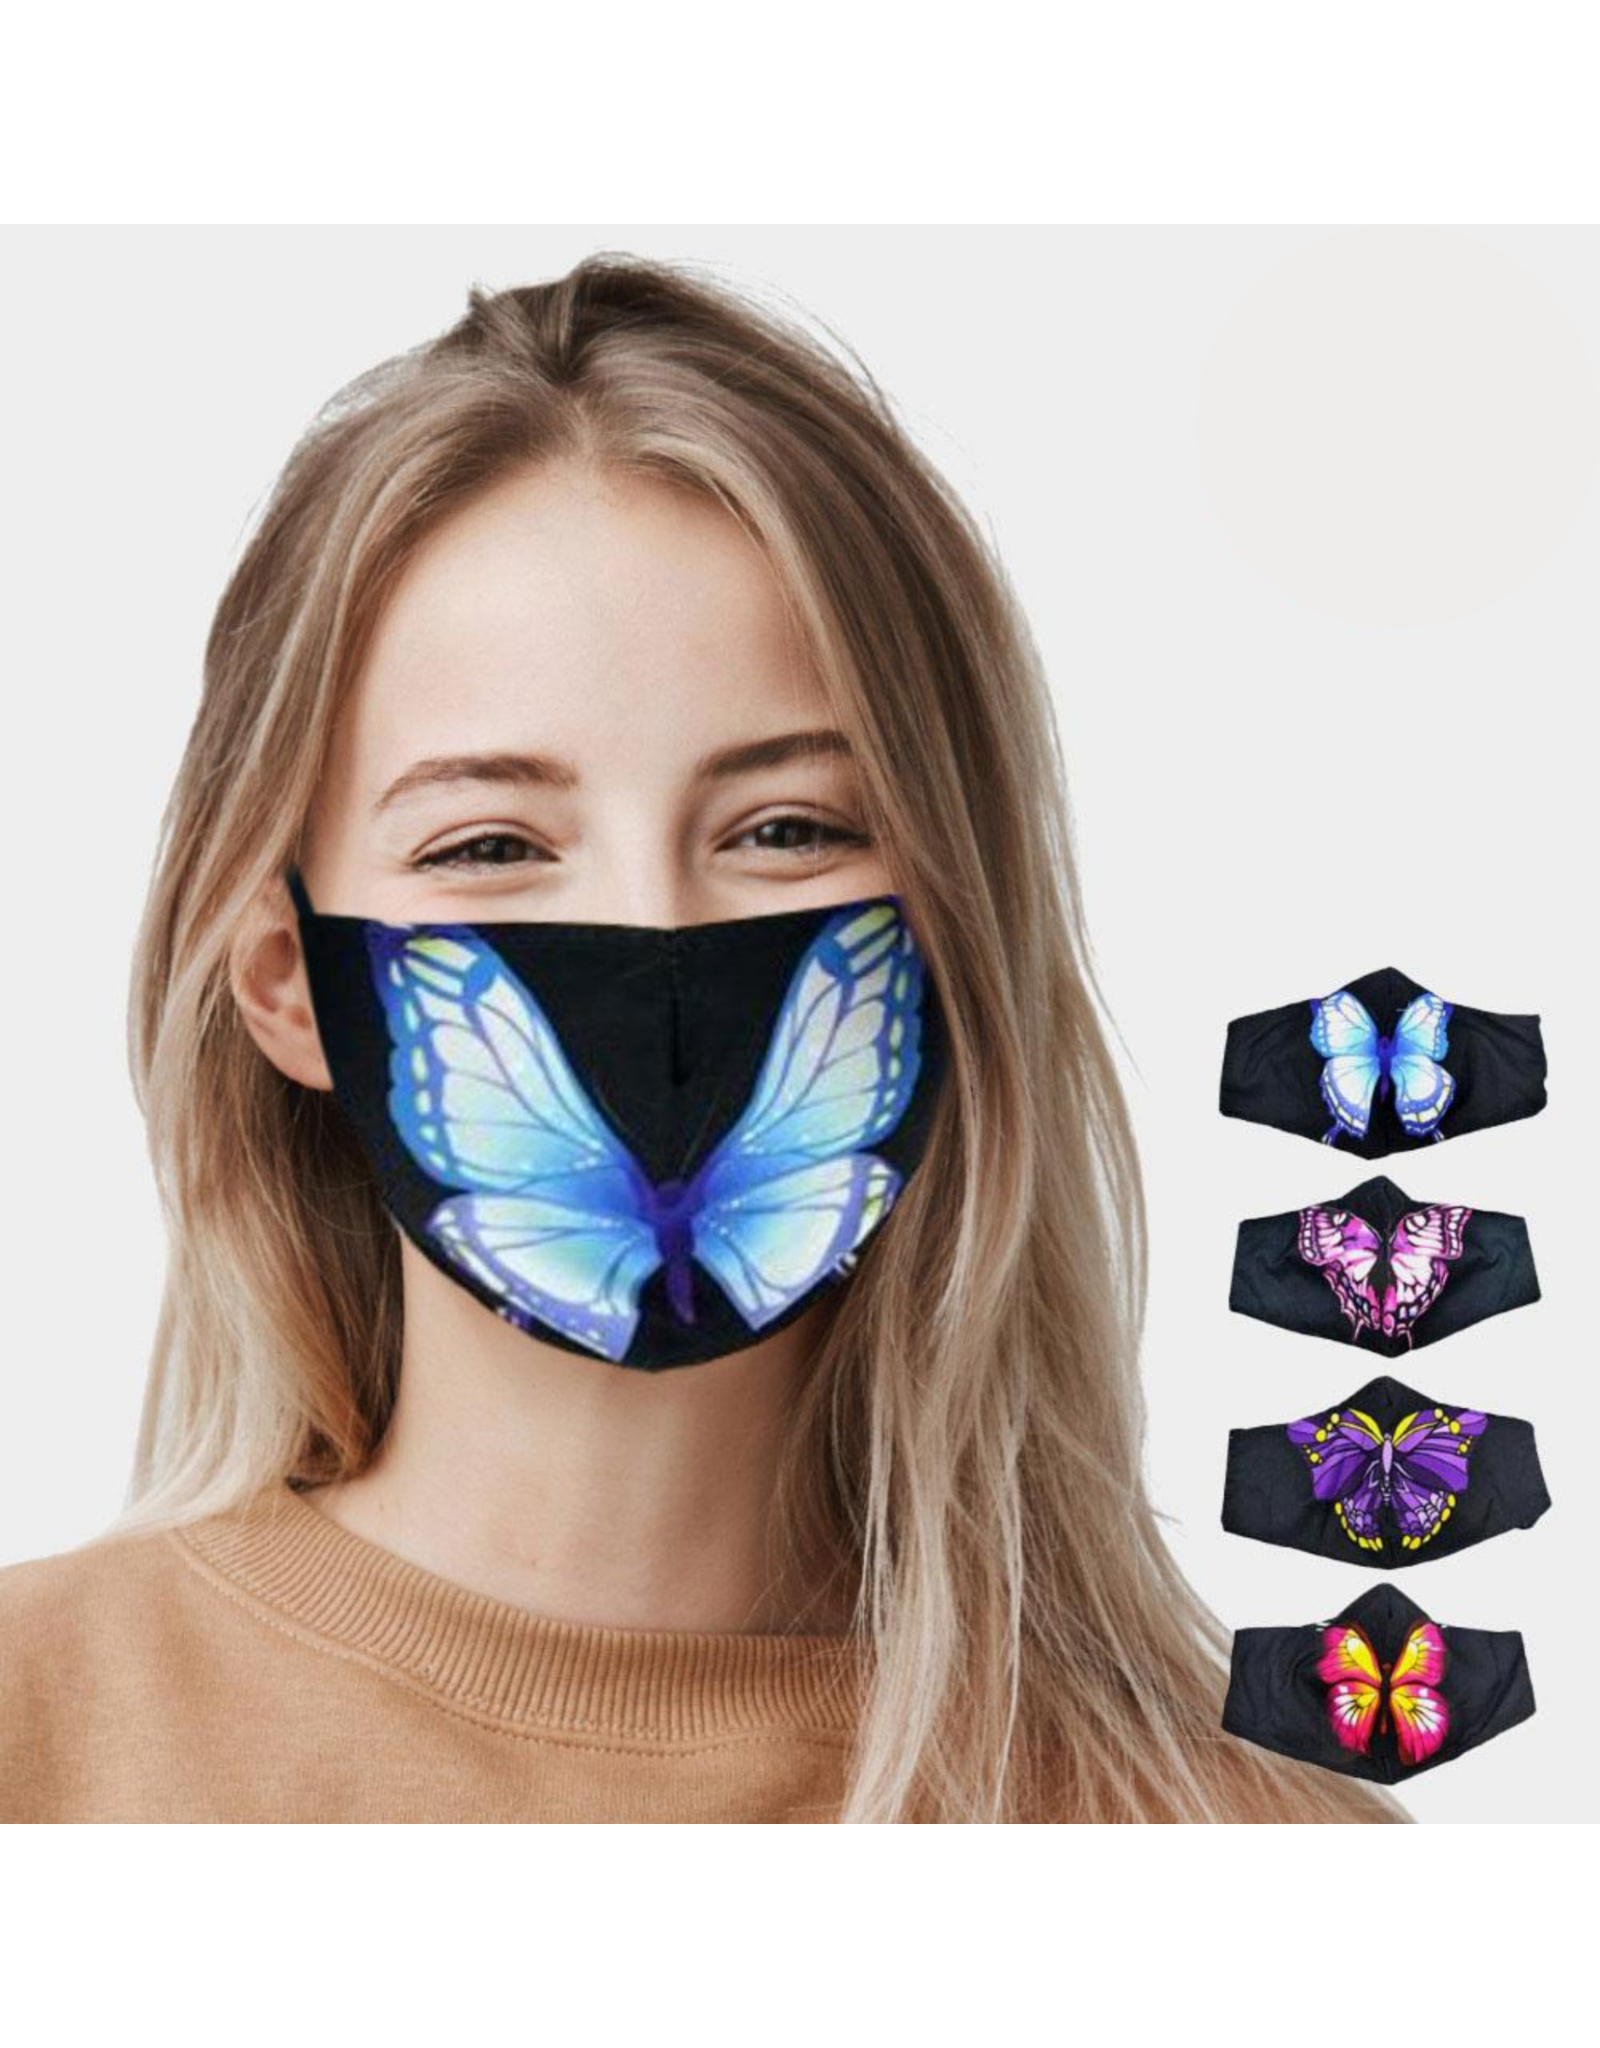 New Mask Styles